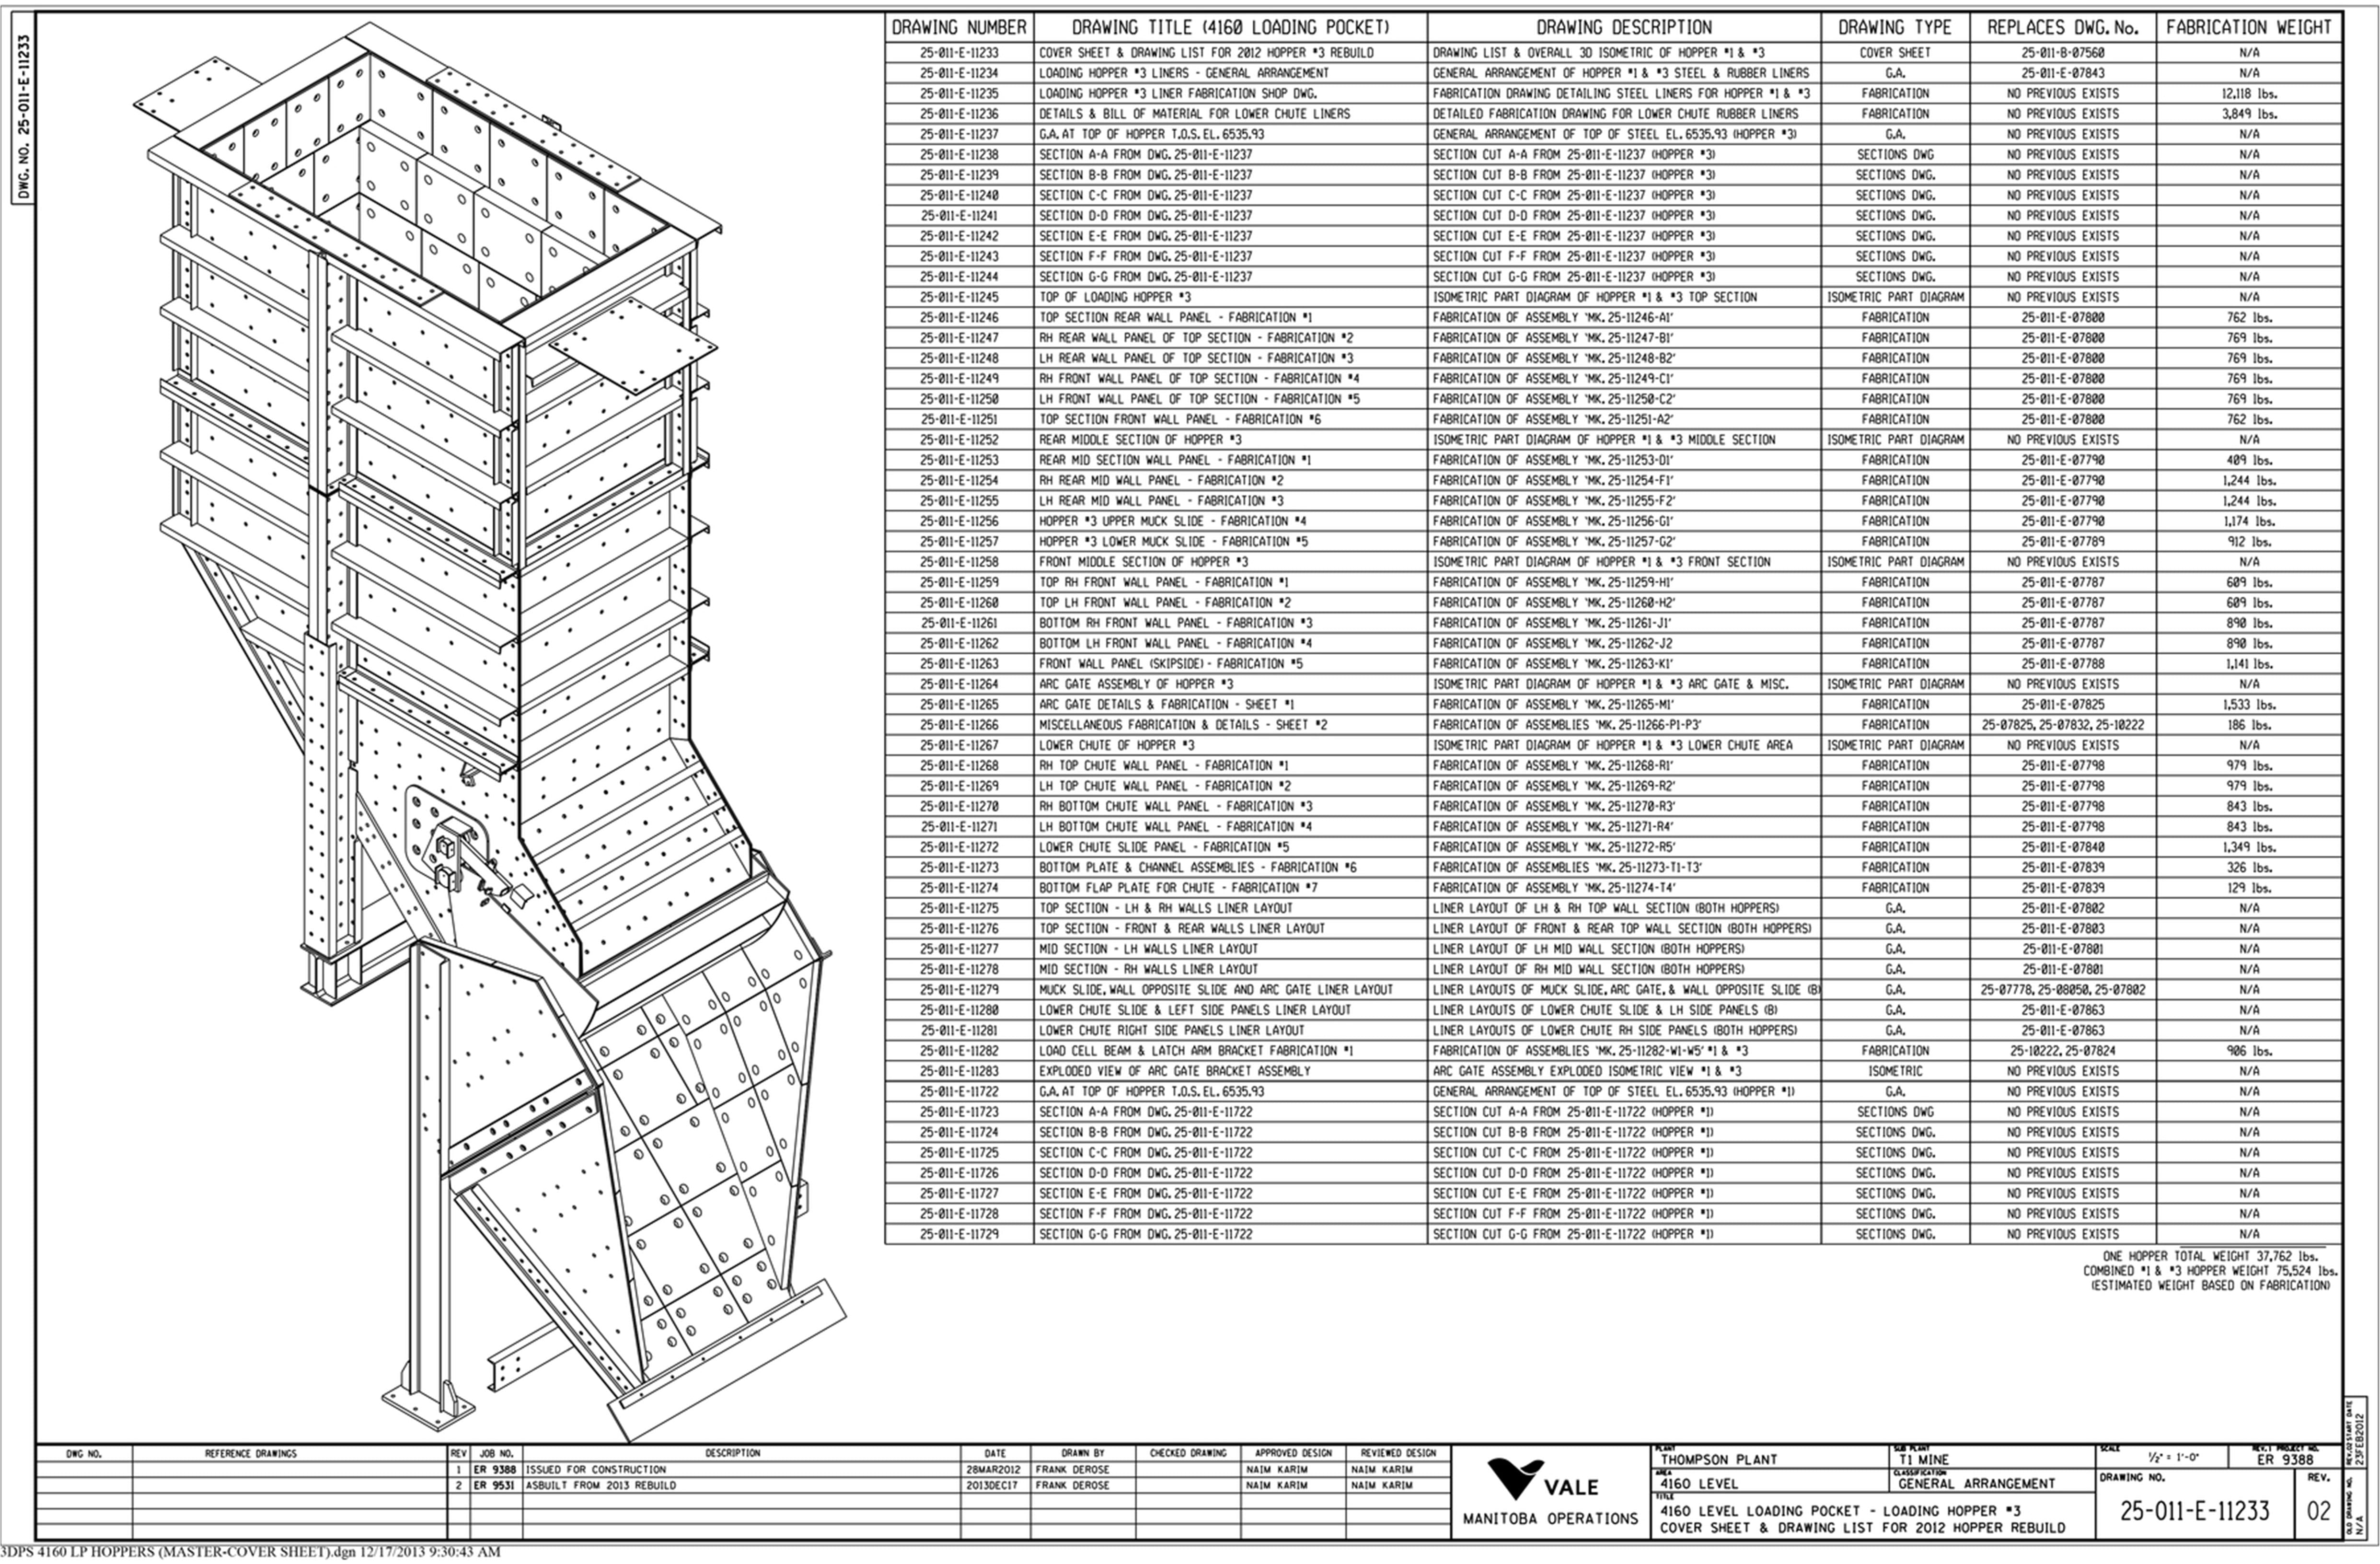 Beam Bridge Diagram 3d Unlimited Access To Wiring Bentley Ism Ud1b5 Ud569 Uad6c Uc870 Ubaa8 Ub378 Ub9c1 Uc18c Ud504 Ud2b8 Uc6e8 Uc5b4 Cantilever Drawing